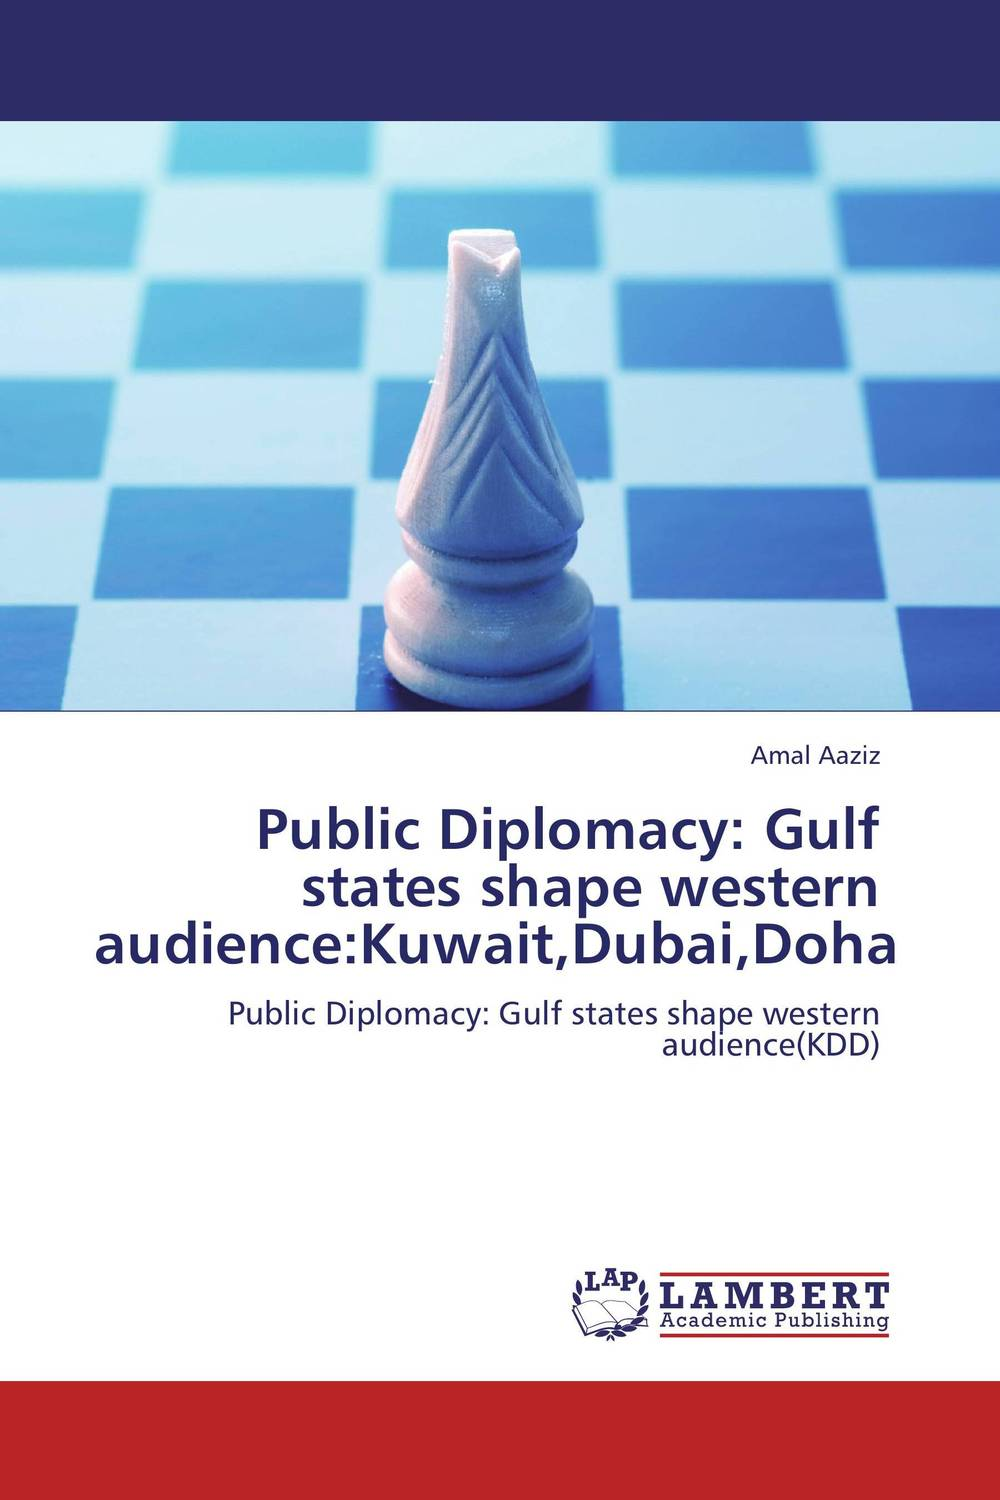 Public Diplomacy: Gulf states shape western audience:Kuwait,Dubai,Doha 30pcs in one postcard take a walk on the go dubai arab emirates christmas postcards greeting birthday message cards 10 2x14 2cm